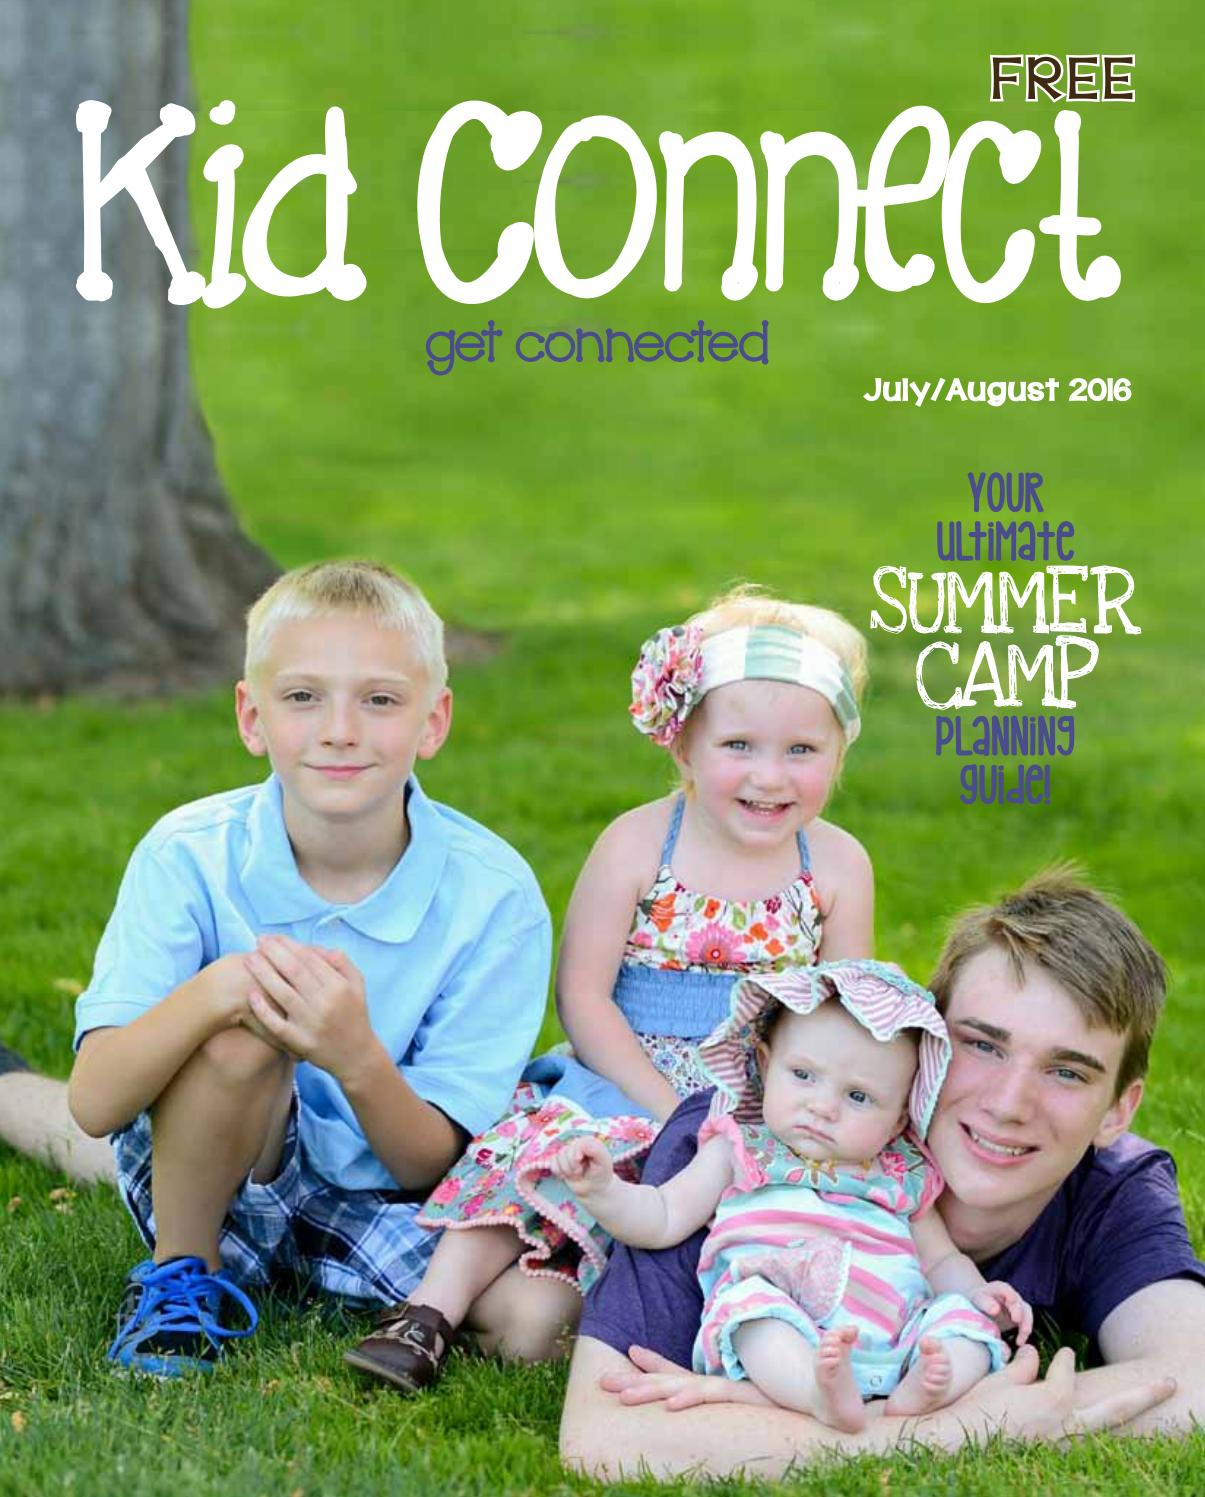 Kid Connect July/August 2016 by Shawn Cox - issuu